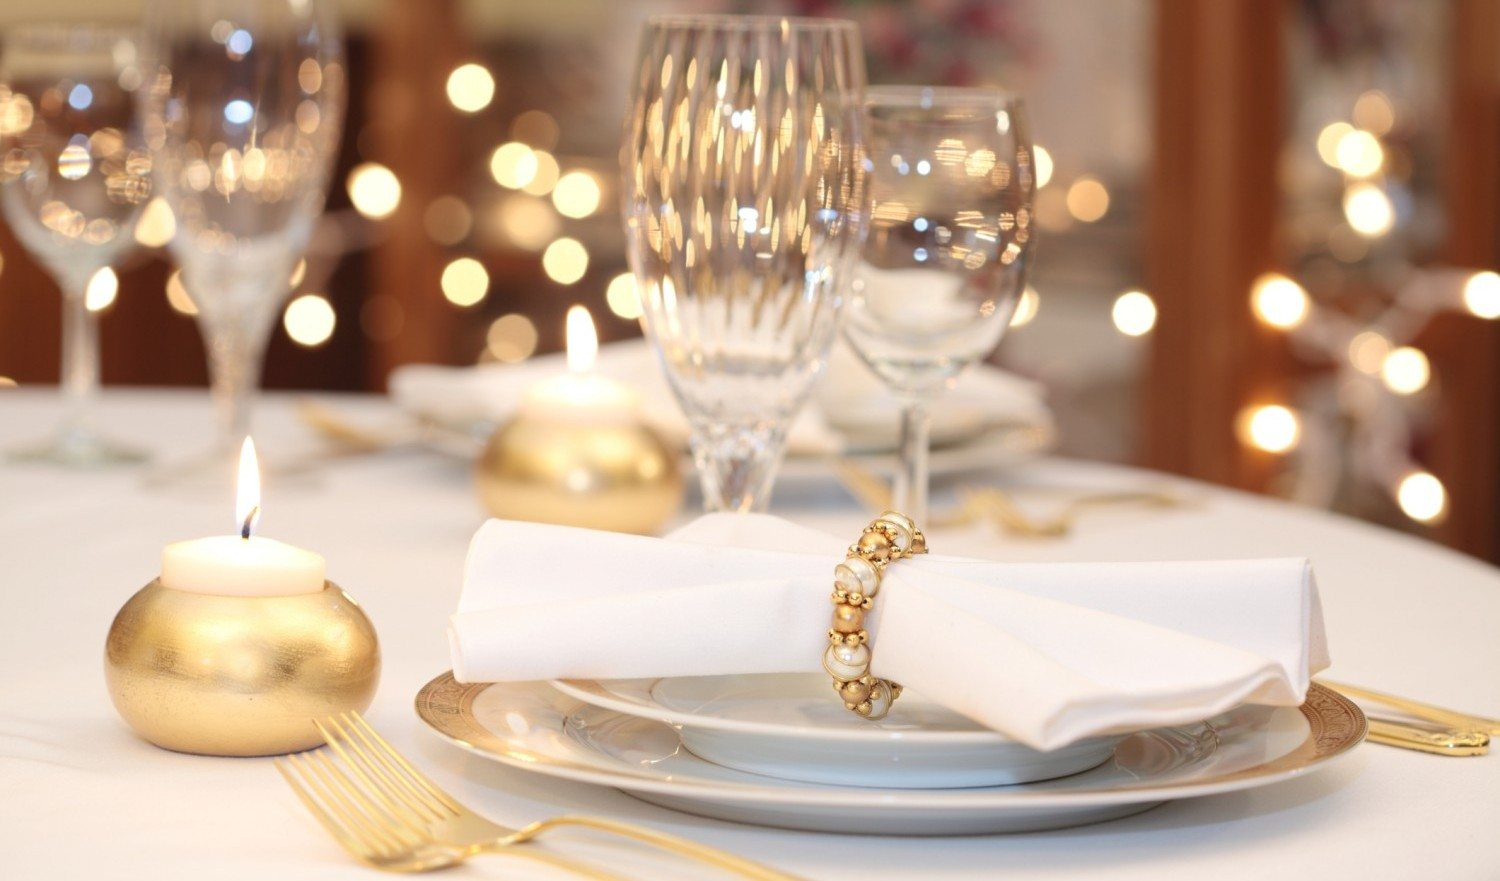 Elegant place setting in gold, white and clear crystal. Gold candle holder with burning candle. Lights in background are out of focus. Shallow depth of field.